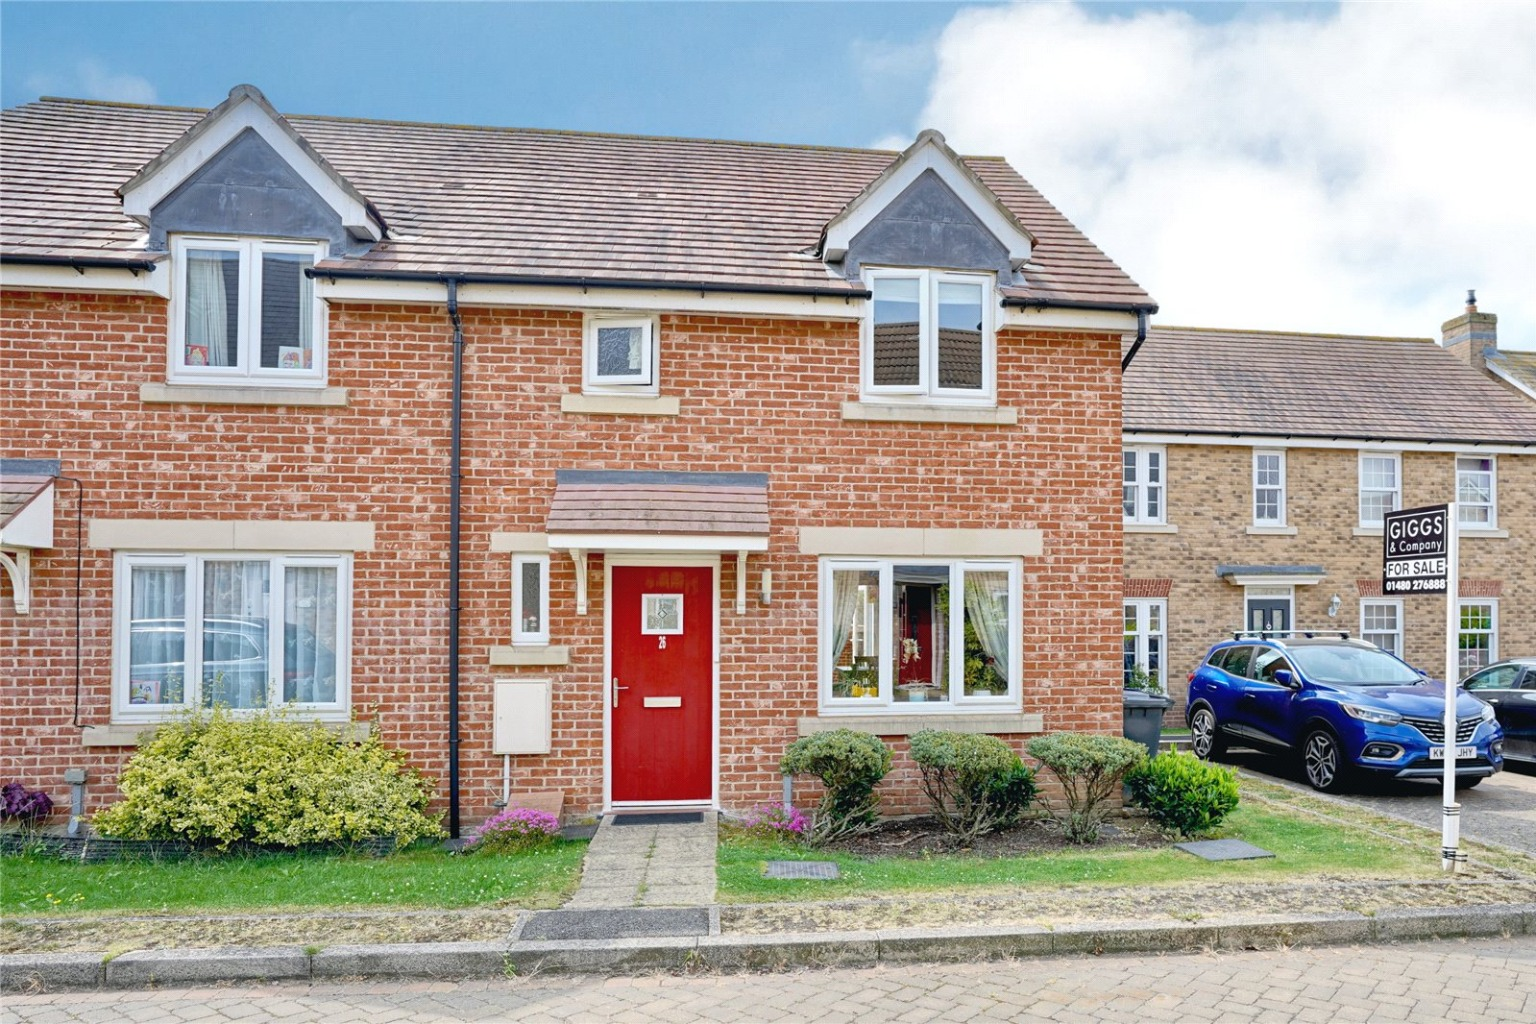 3 bed  for sale in Middle Ground, St. Neots, PE19